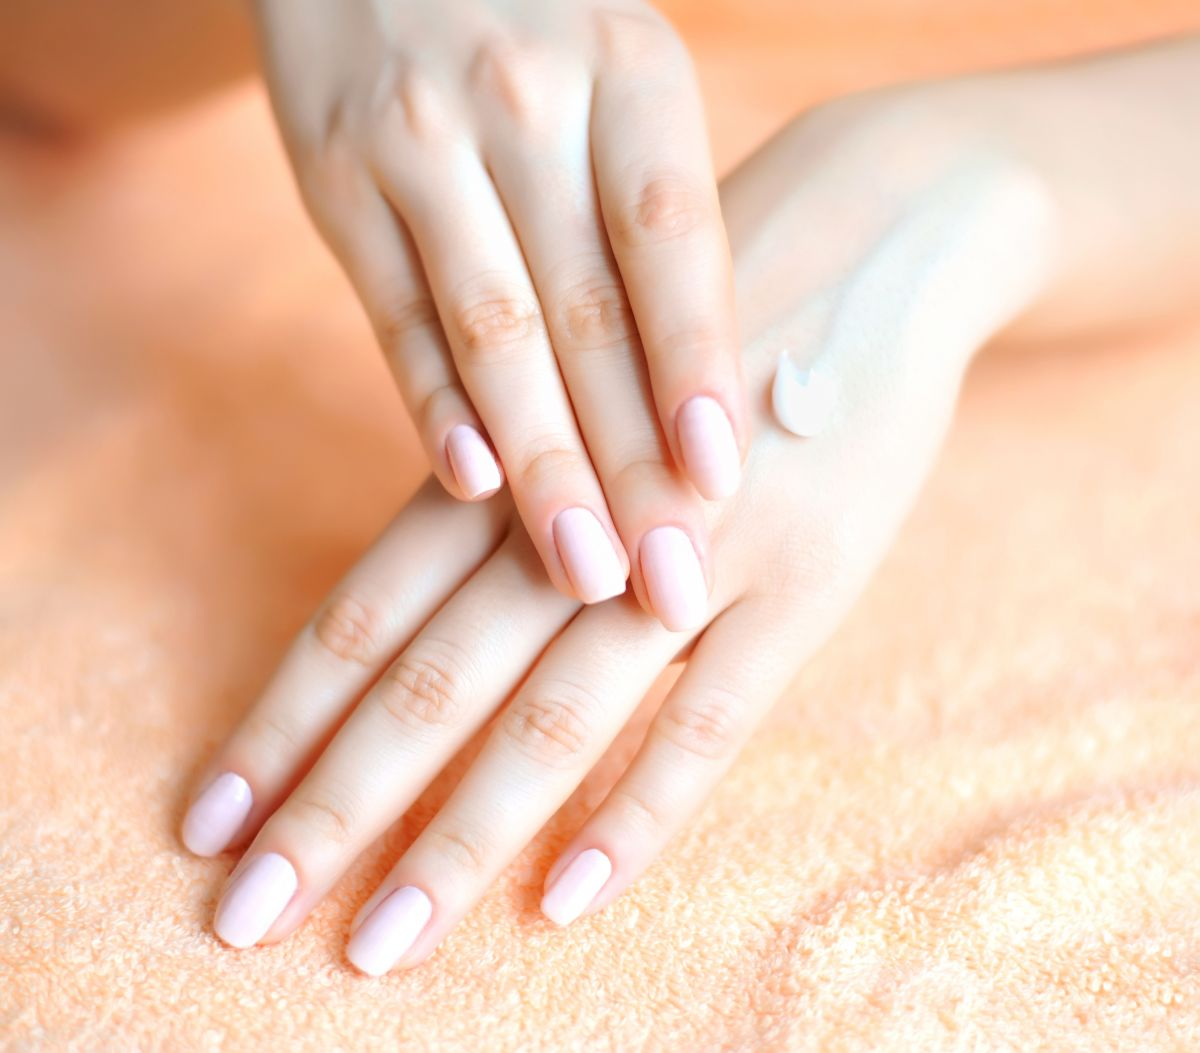 4 keys to make your nails grow stronger and faster | The State